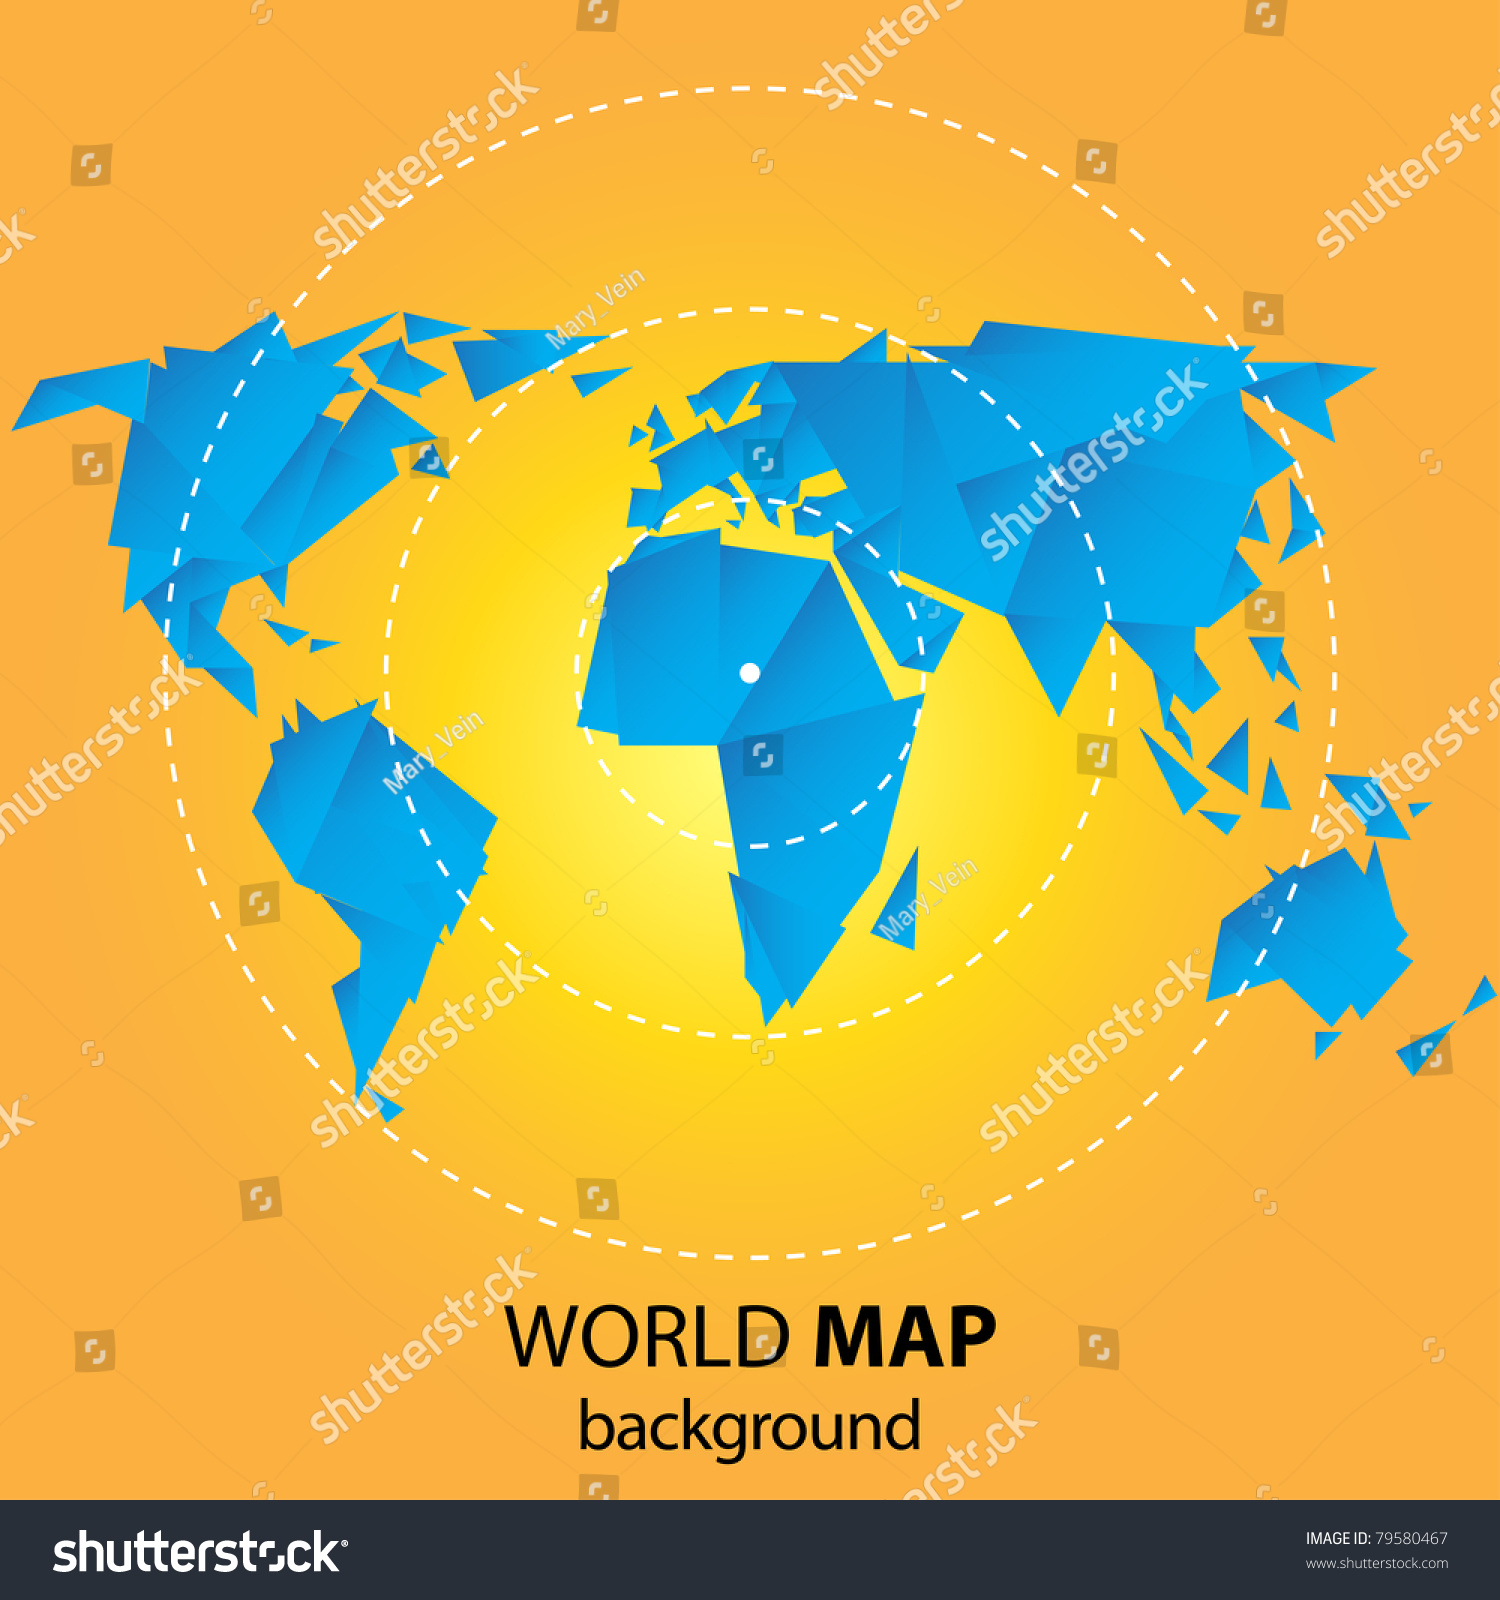 World map background origami style vectores en stock 79580467 world map background in origami style gumiabroncs Choice Image